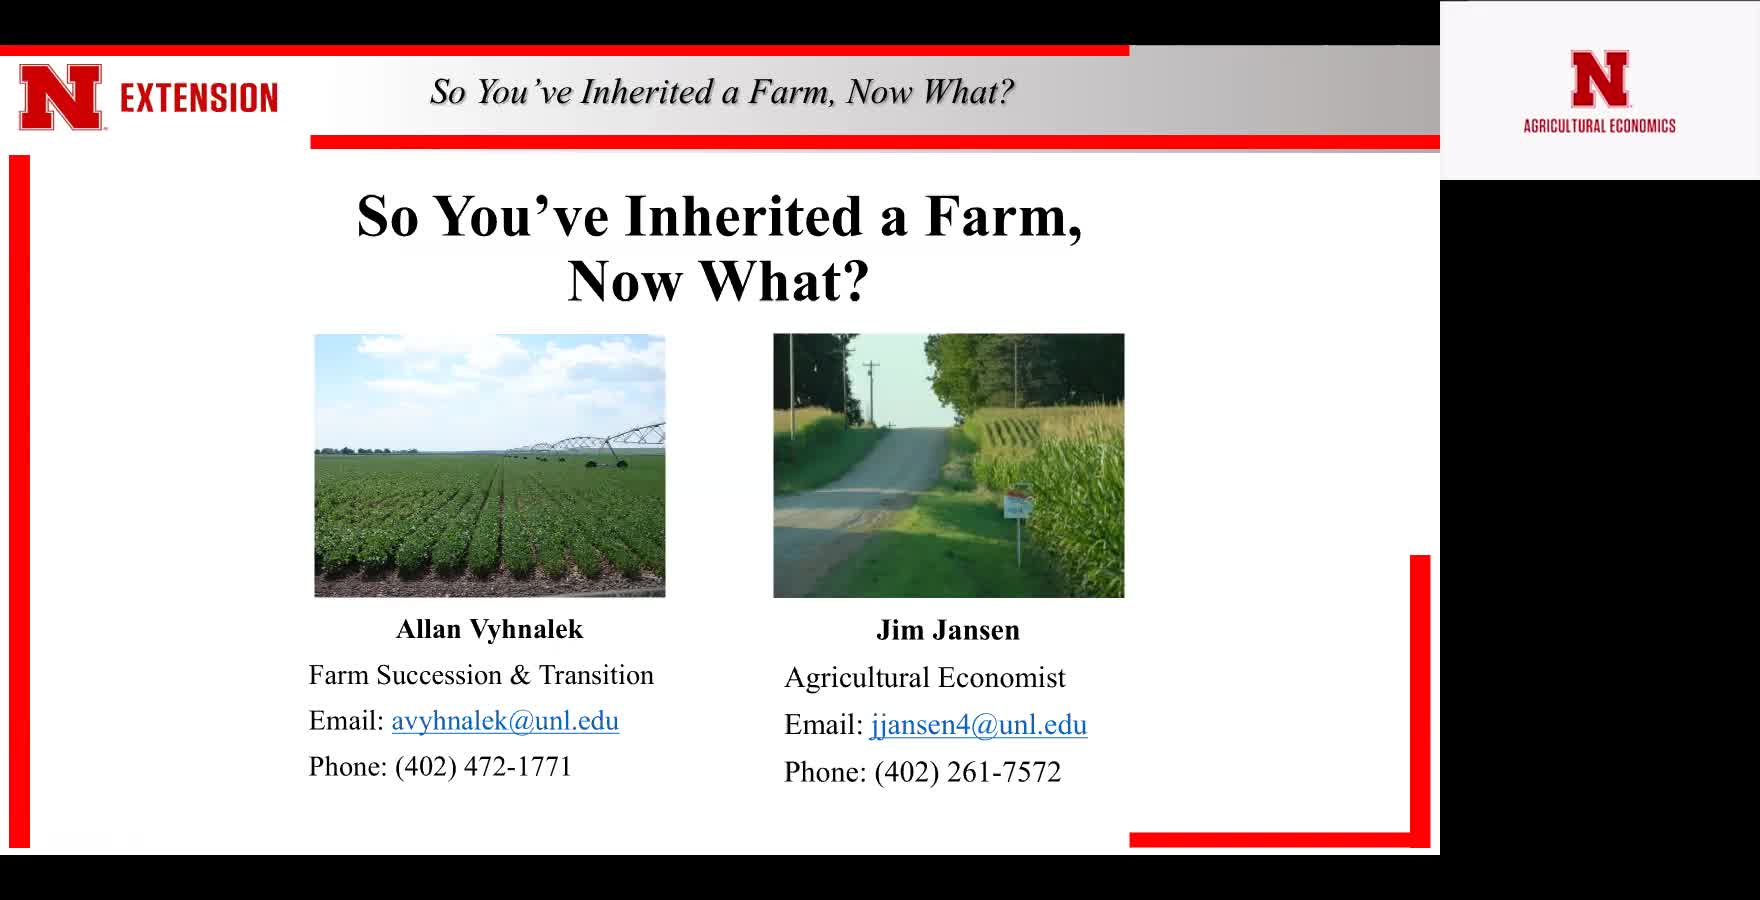 So You've Inherited a Farm, Now What? Farm Succession Webinar